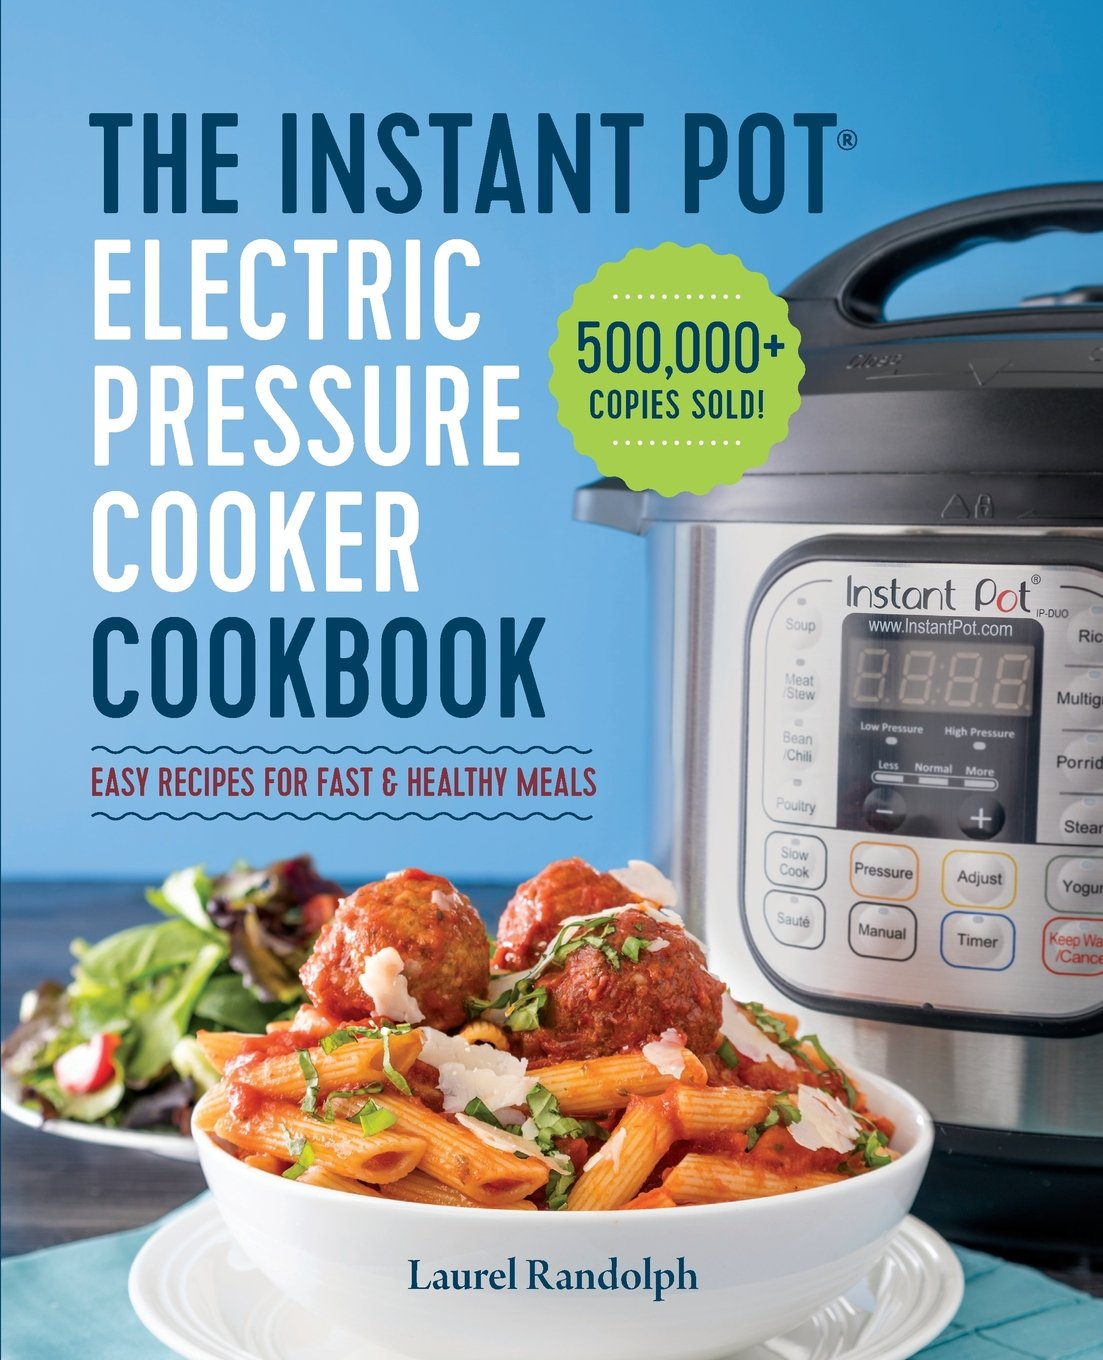 The Instant Pot Electric Pressure Cooker Cookbook: Easy Recipes for Fast & Healthy Meals: Amazon.es: Laurel Randolph: Libros en idiomas extranjeros